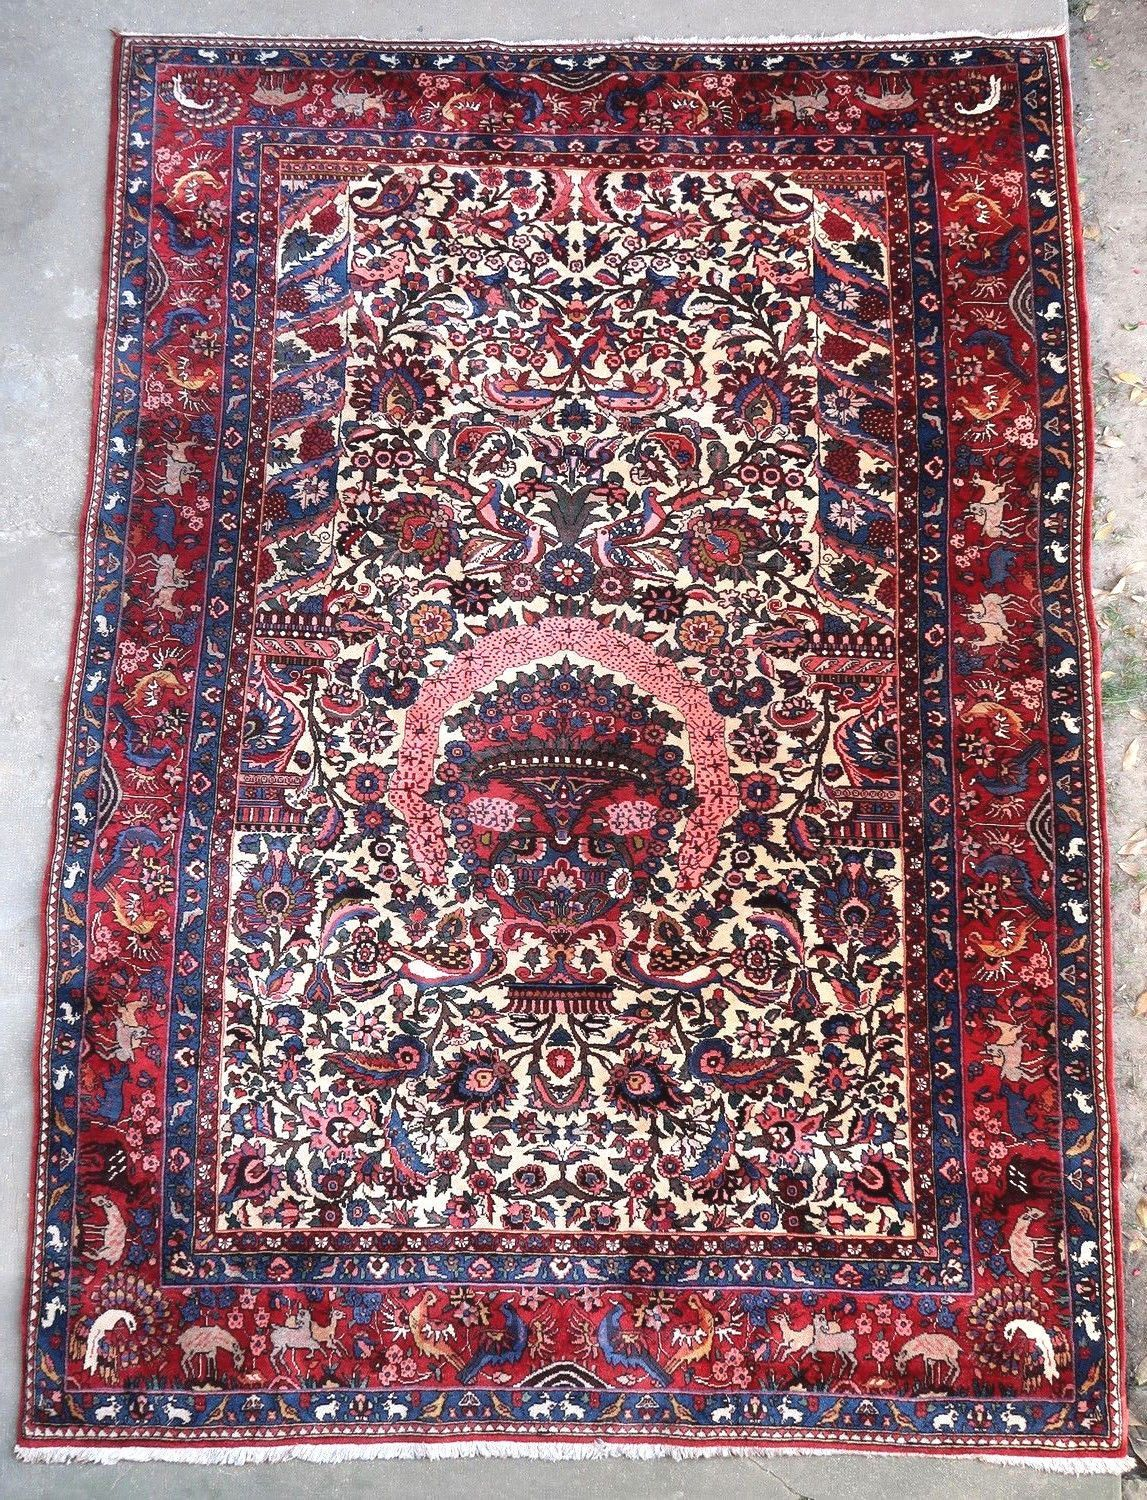 Antique Persian Rug Bakhtiari 1950 By Doux